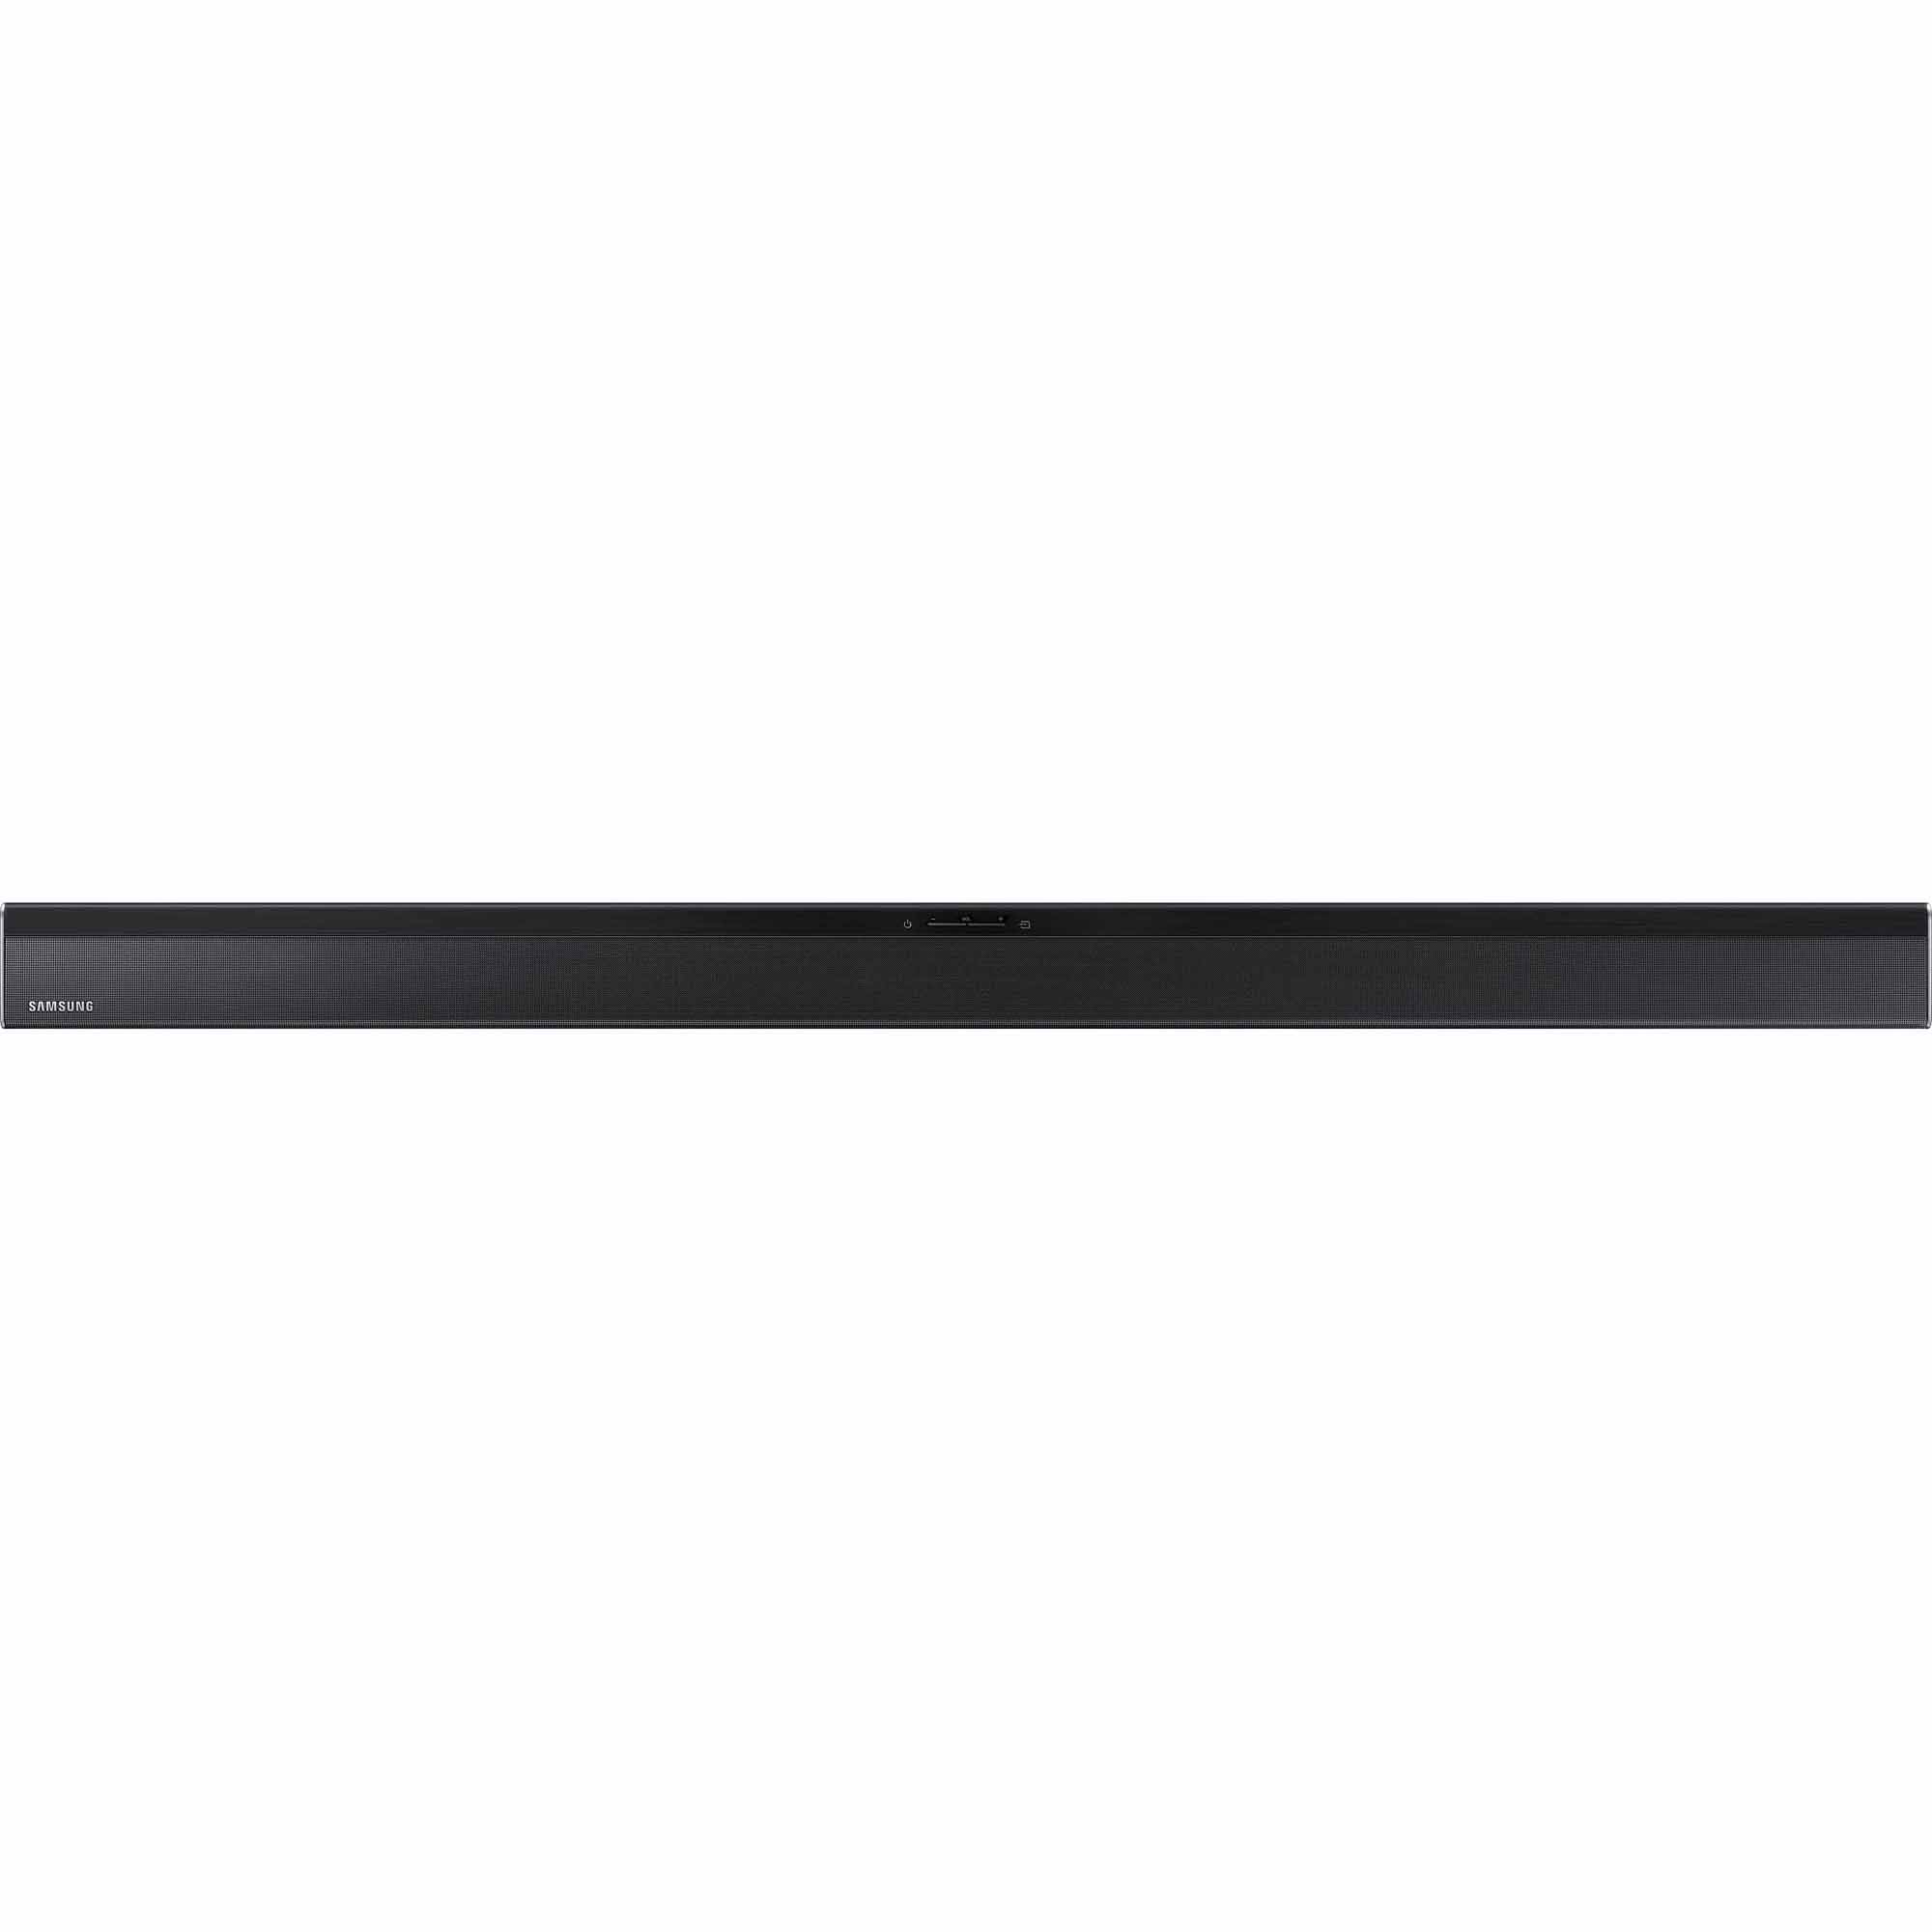 Samsung 320W Wireless Multiroom Audio Soundbar - HW-J650